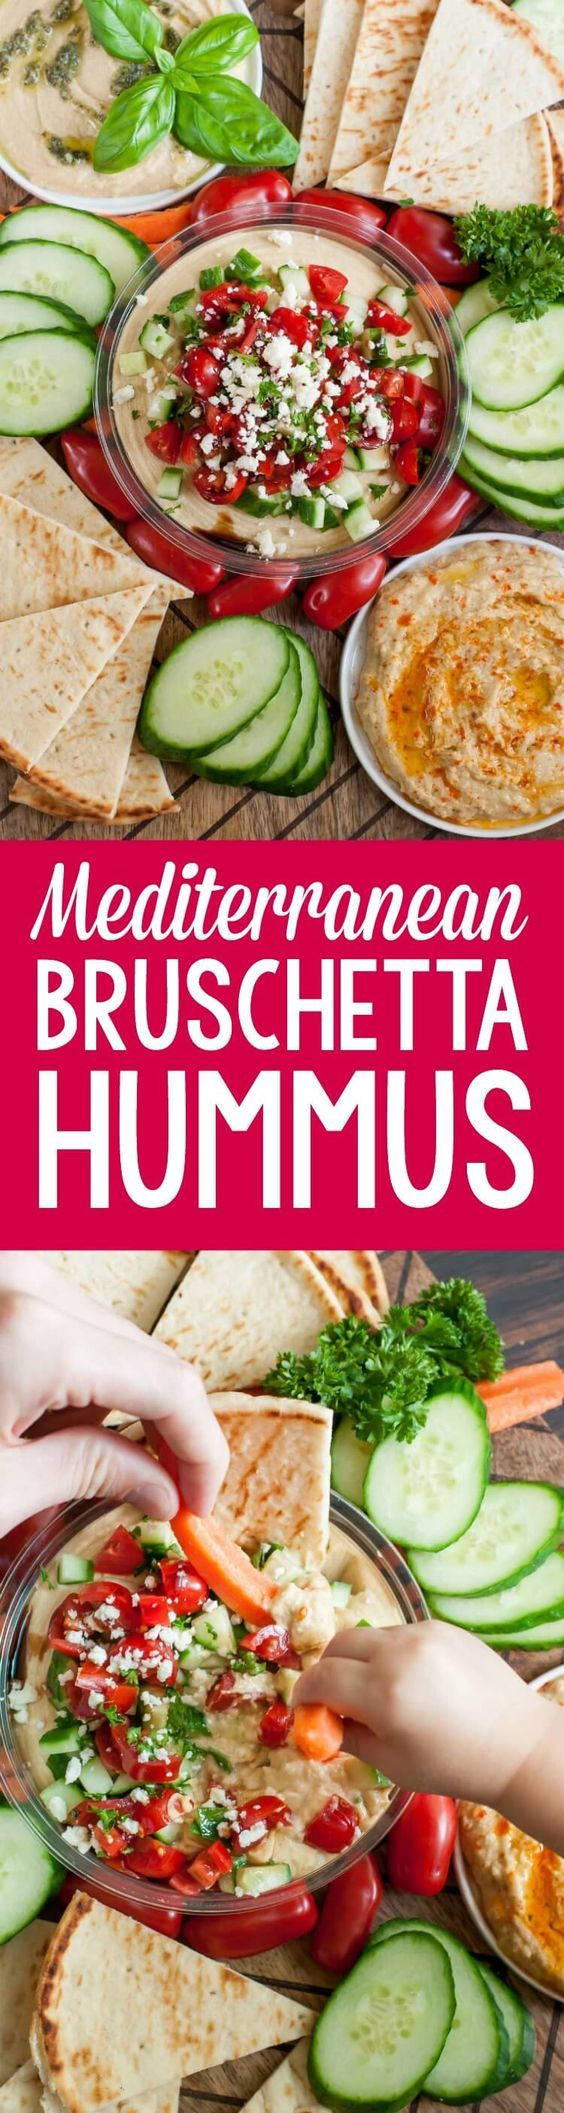 Snag a tub of your favorite hummus and whip up this Mediterranean Bruschetta Hummus snack platter for a tasty pre-dinner snack that's sure to satisfy!